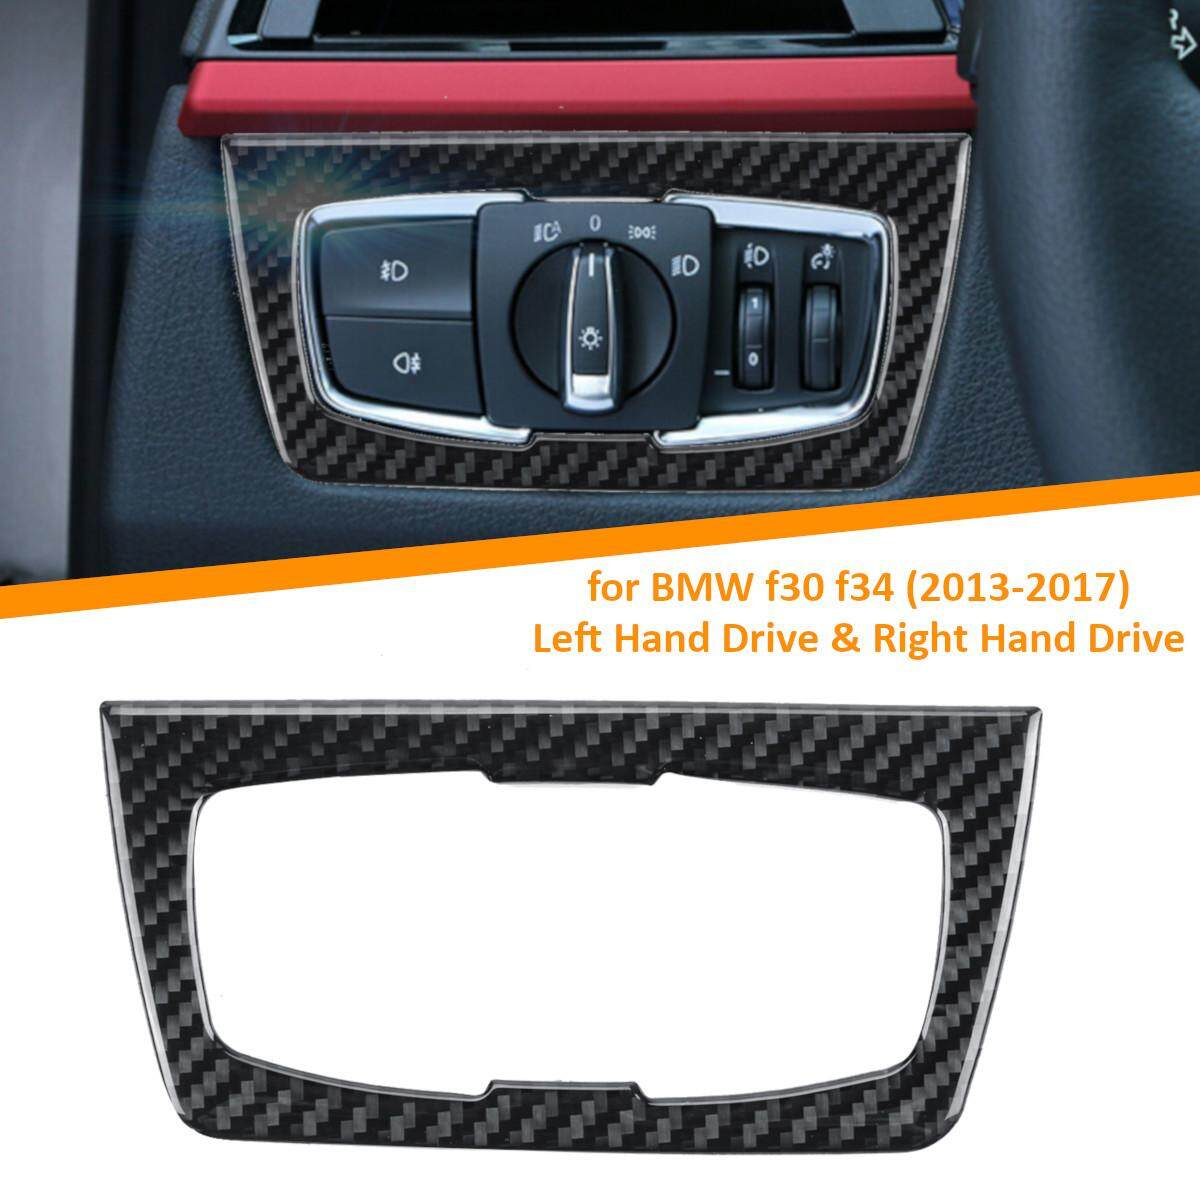 Carbon Fiber Headlight Switch Buttons Decor Cover Interior Trim Car Styling Sticker For Bmw F30 F34 320i 3 Series Accessories By Audew.